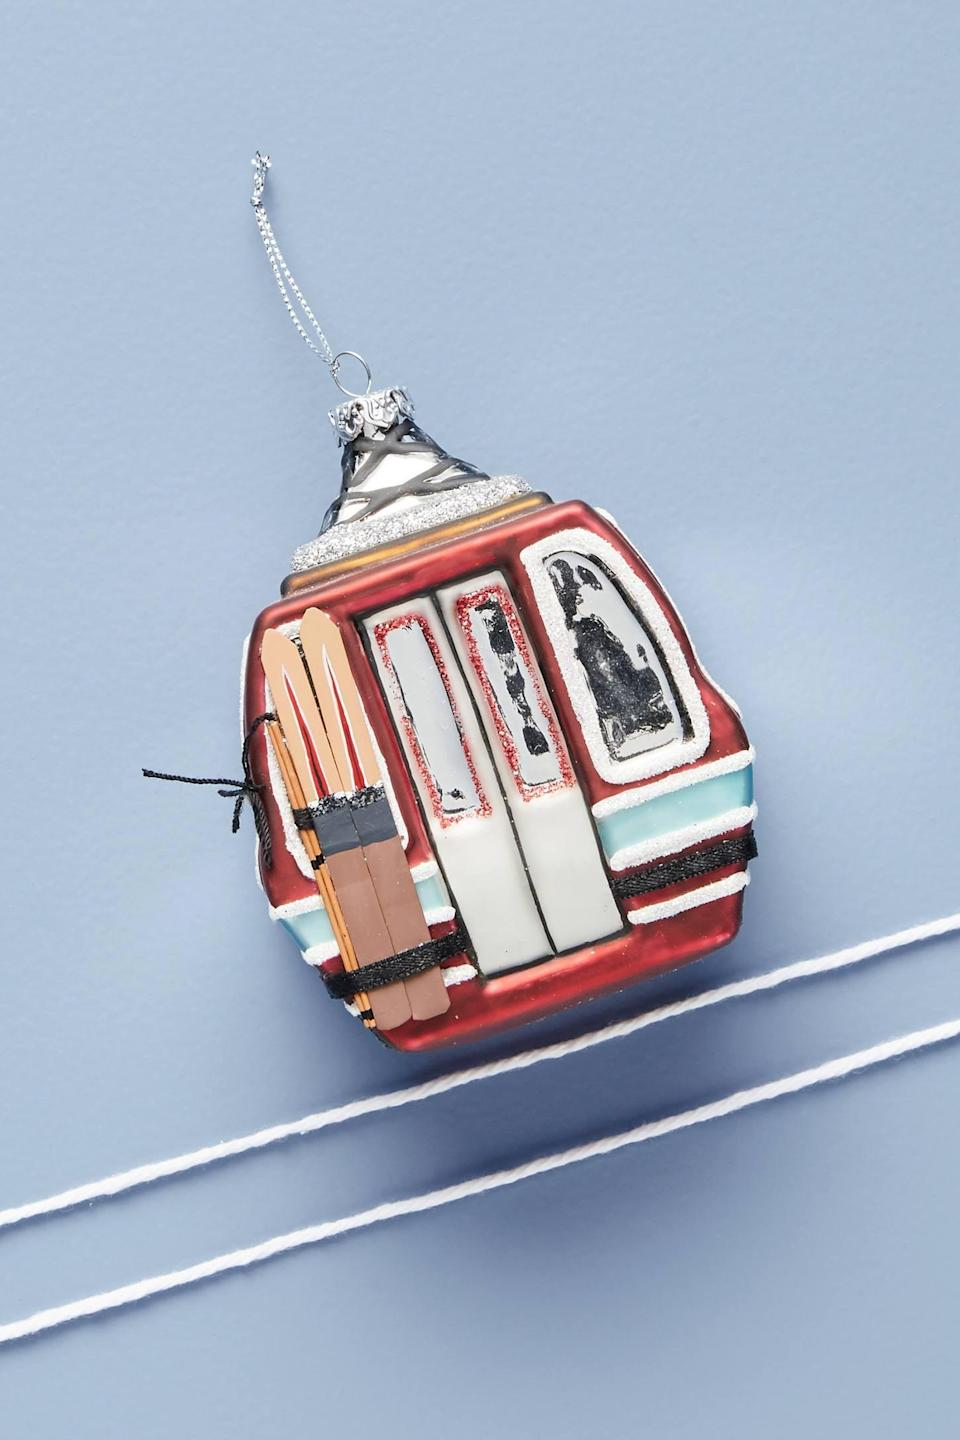 """<p>Skiers and snowboarders will love the details in this glass <a href=""""https://www.popsugar.com/buy/Ski-Gondola-Ornament-490513?p_name=Ski%20Gondola%20Ornament&retailer=anthropologie.com&pid=490513&price=18&evar1=casa%3Aus&evar9=46615300&evar98=https%3A%2F%2Fwww.popsugar.com%2Fhome%2Fphoto-gallery%2F46615300%2Fimage%2F46615383%2FSki-Gondola-Ornament&list1=shopping%2Canthropologie%2Choliday%2Cchristmas%2Cchristmas%20decorations%2Choliday%20decor%2Chome%20shopping&prop13=mobile&pdata=1"""" rel=""""nofollow noopener"""" class=""""link rapid-noclick-resp"""" target=""""_blank"""" data-ylk=""""slk:Ski Gondola Ornament"""">Ski Gondola Ornament</a> ($18).</p>"""